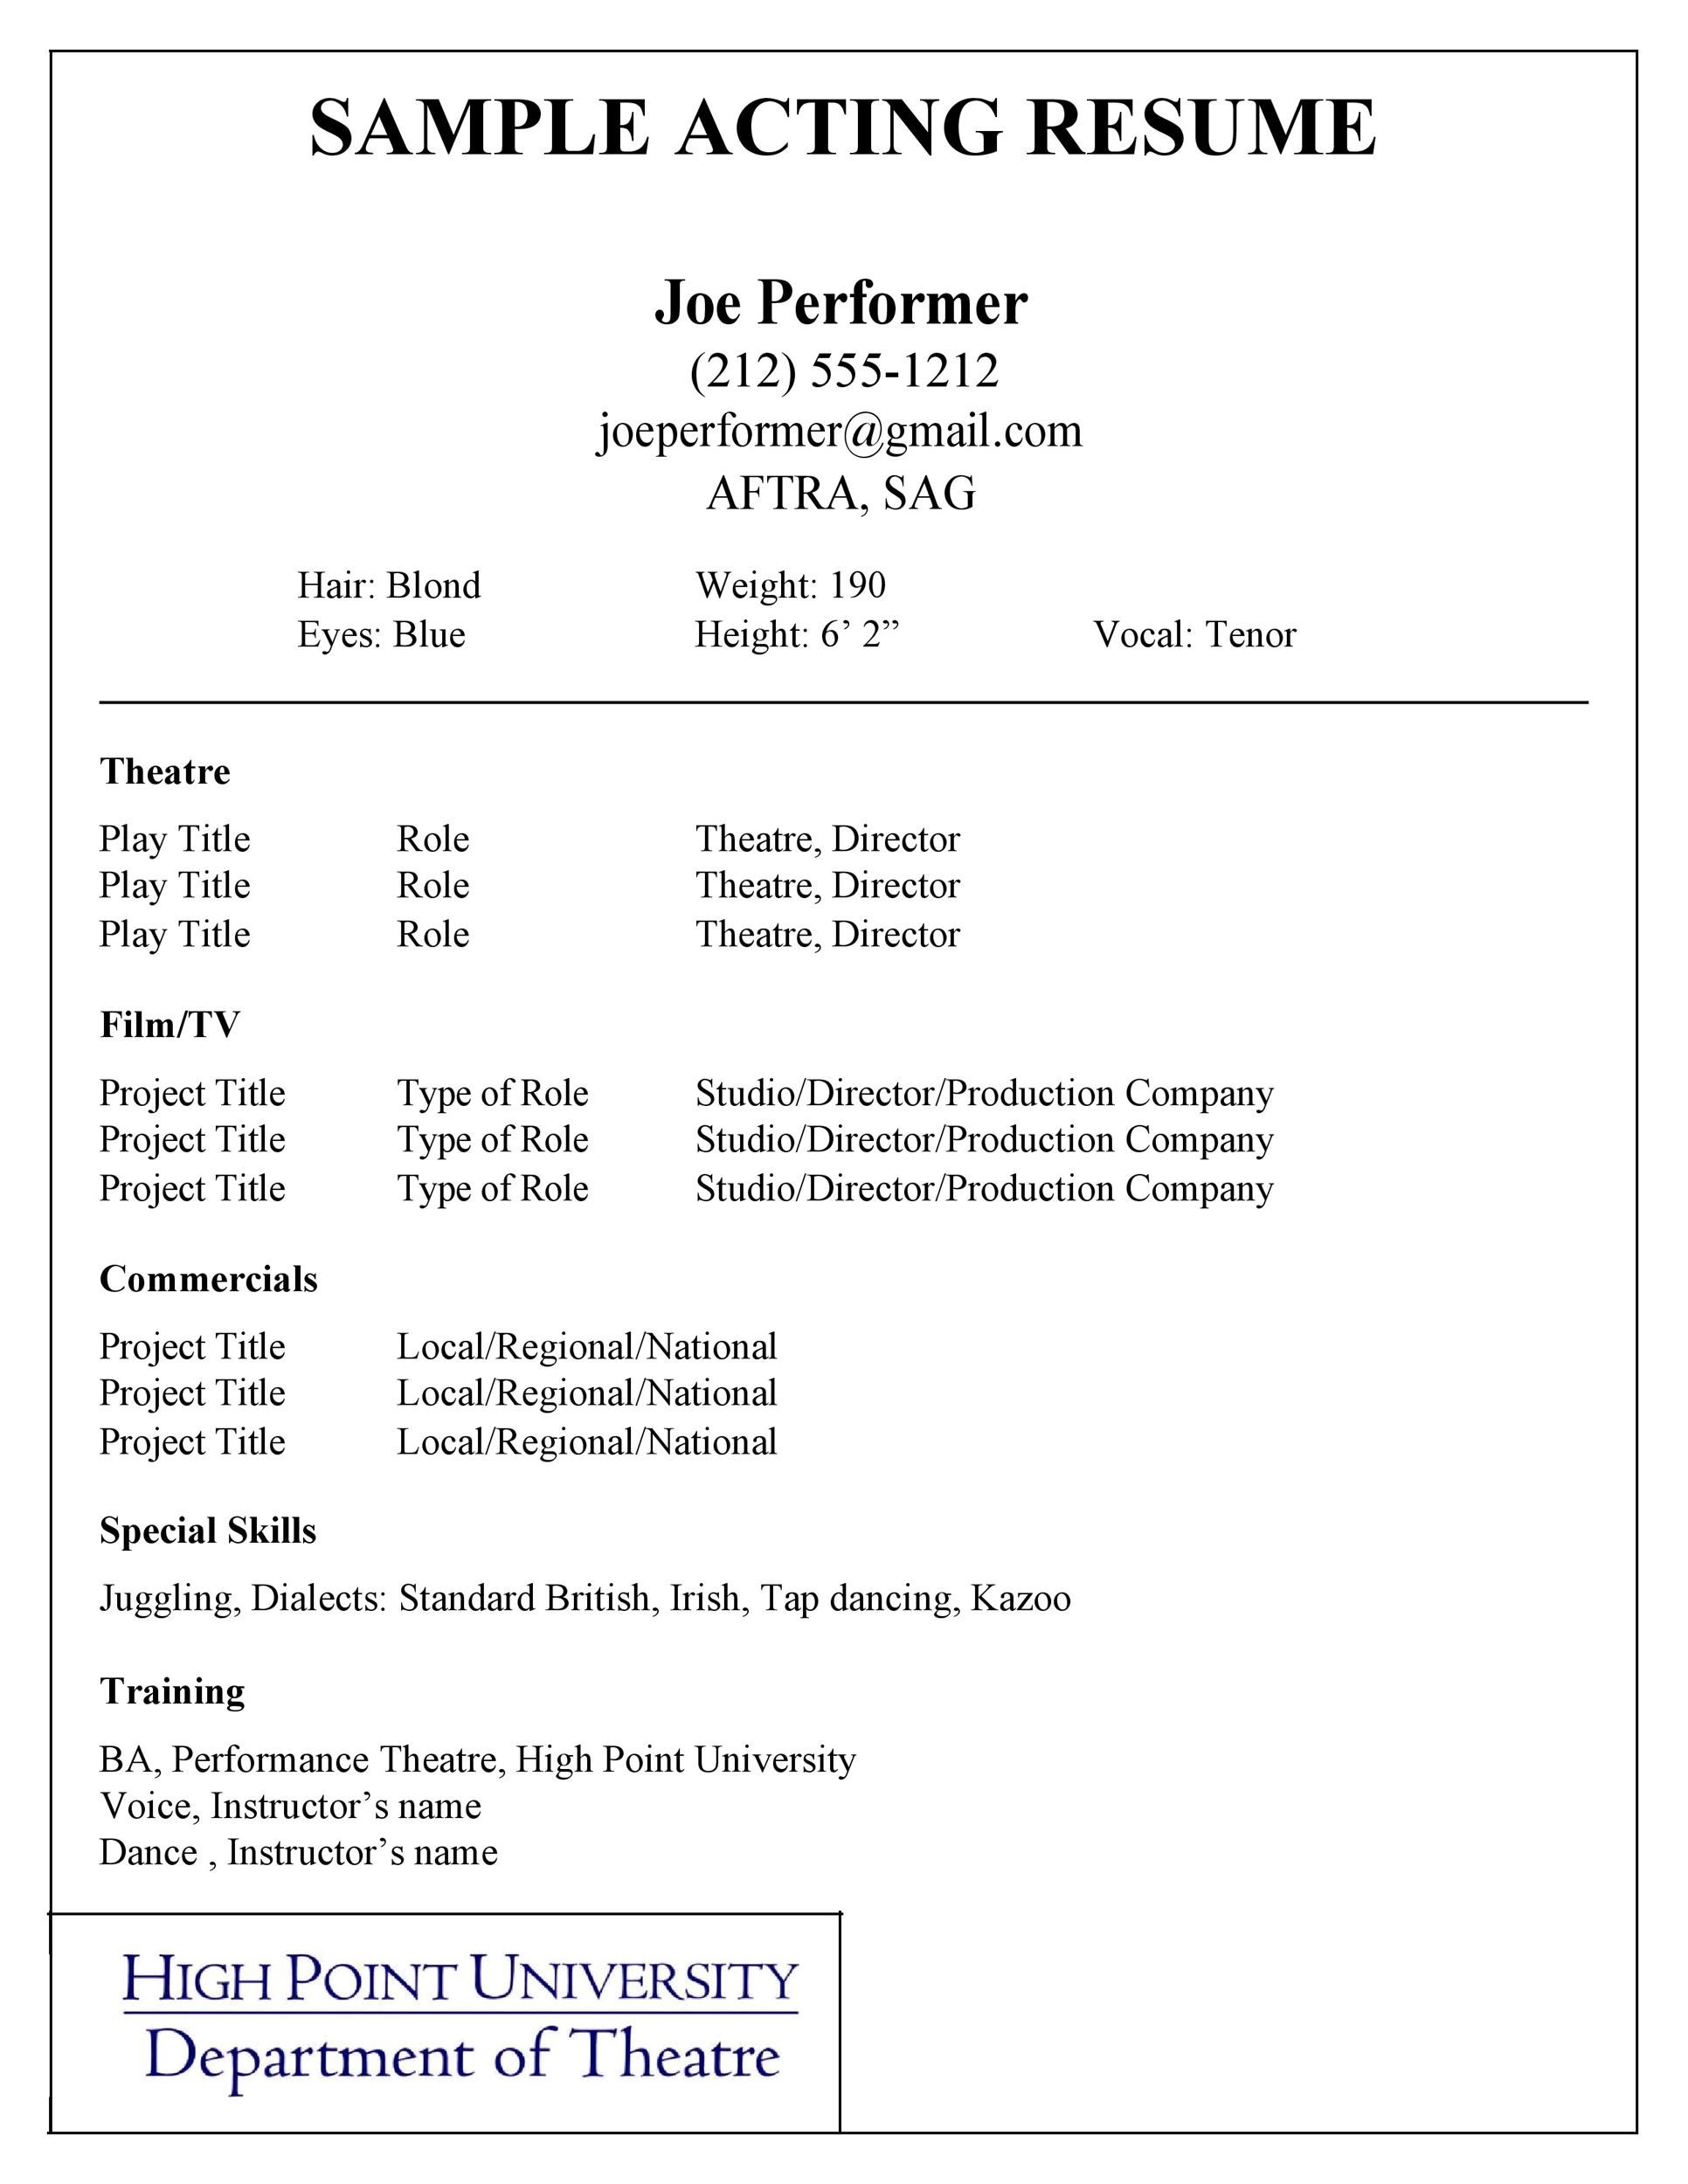 Free acting resume template 01